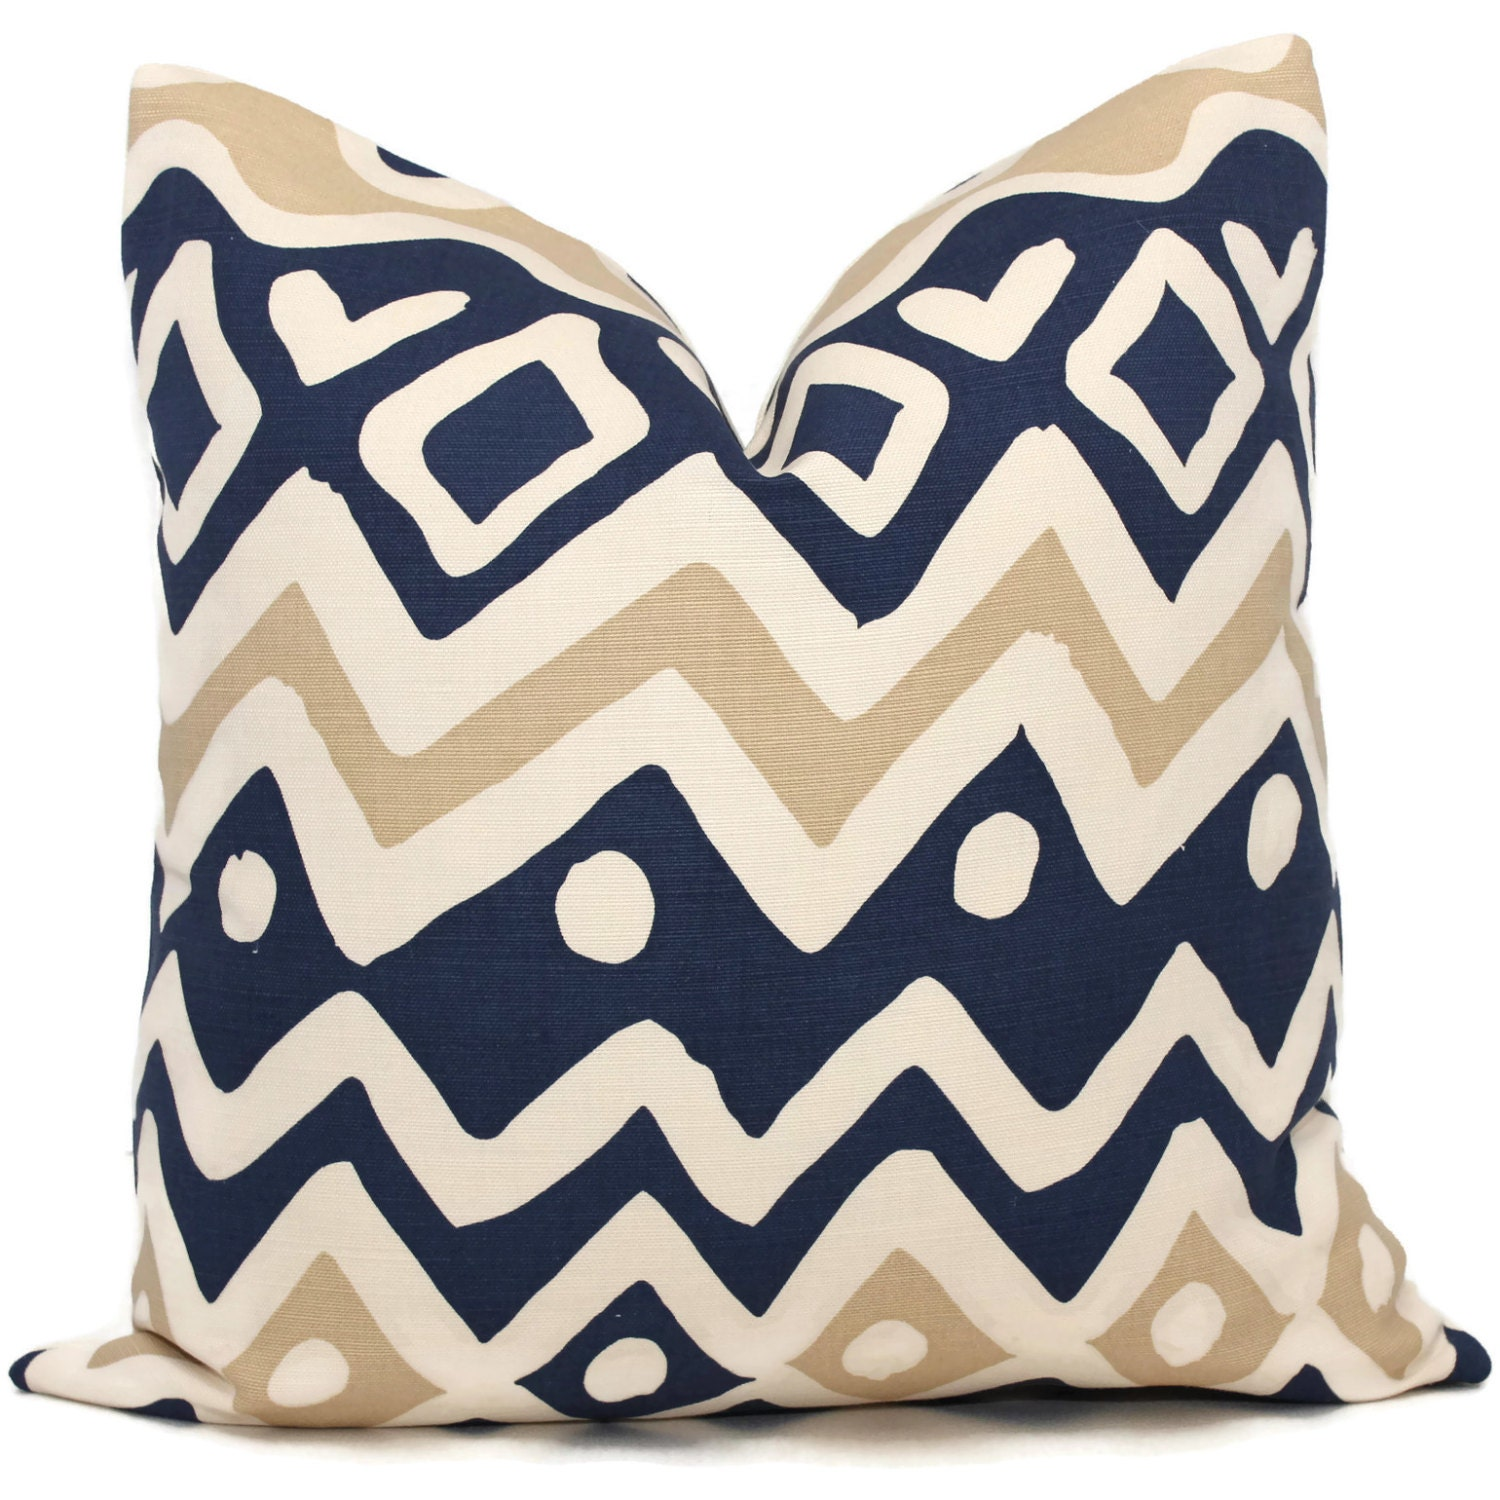 Queen Throw Pillows : Quadrille Pillow Cover Navy and Tan Cap Ferrat Pillow Cover